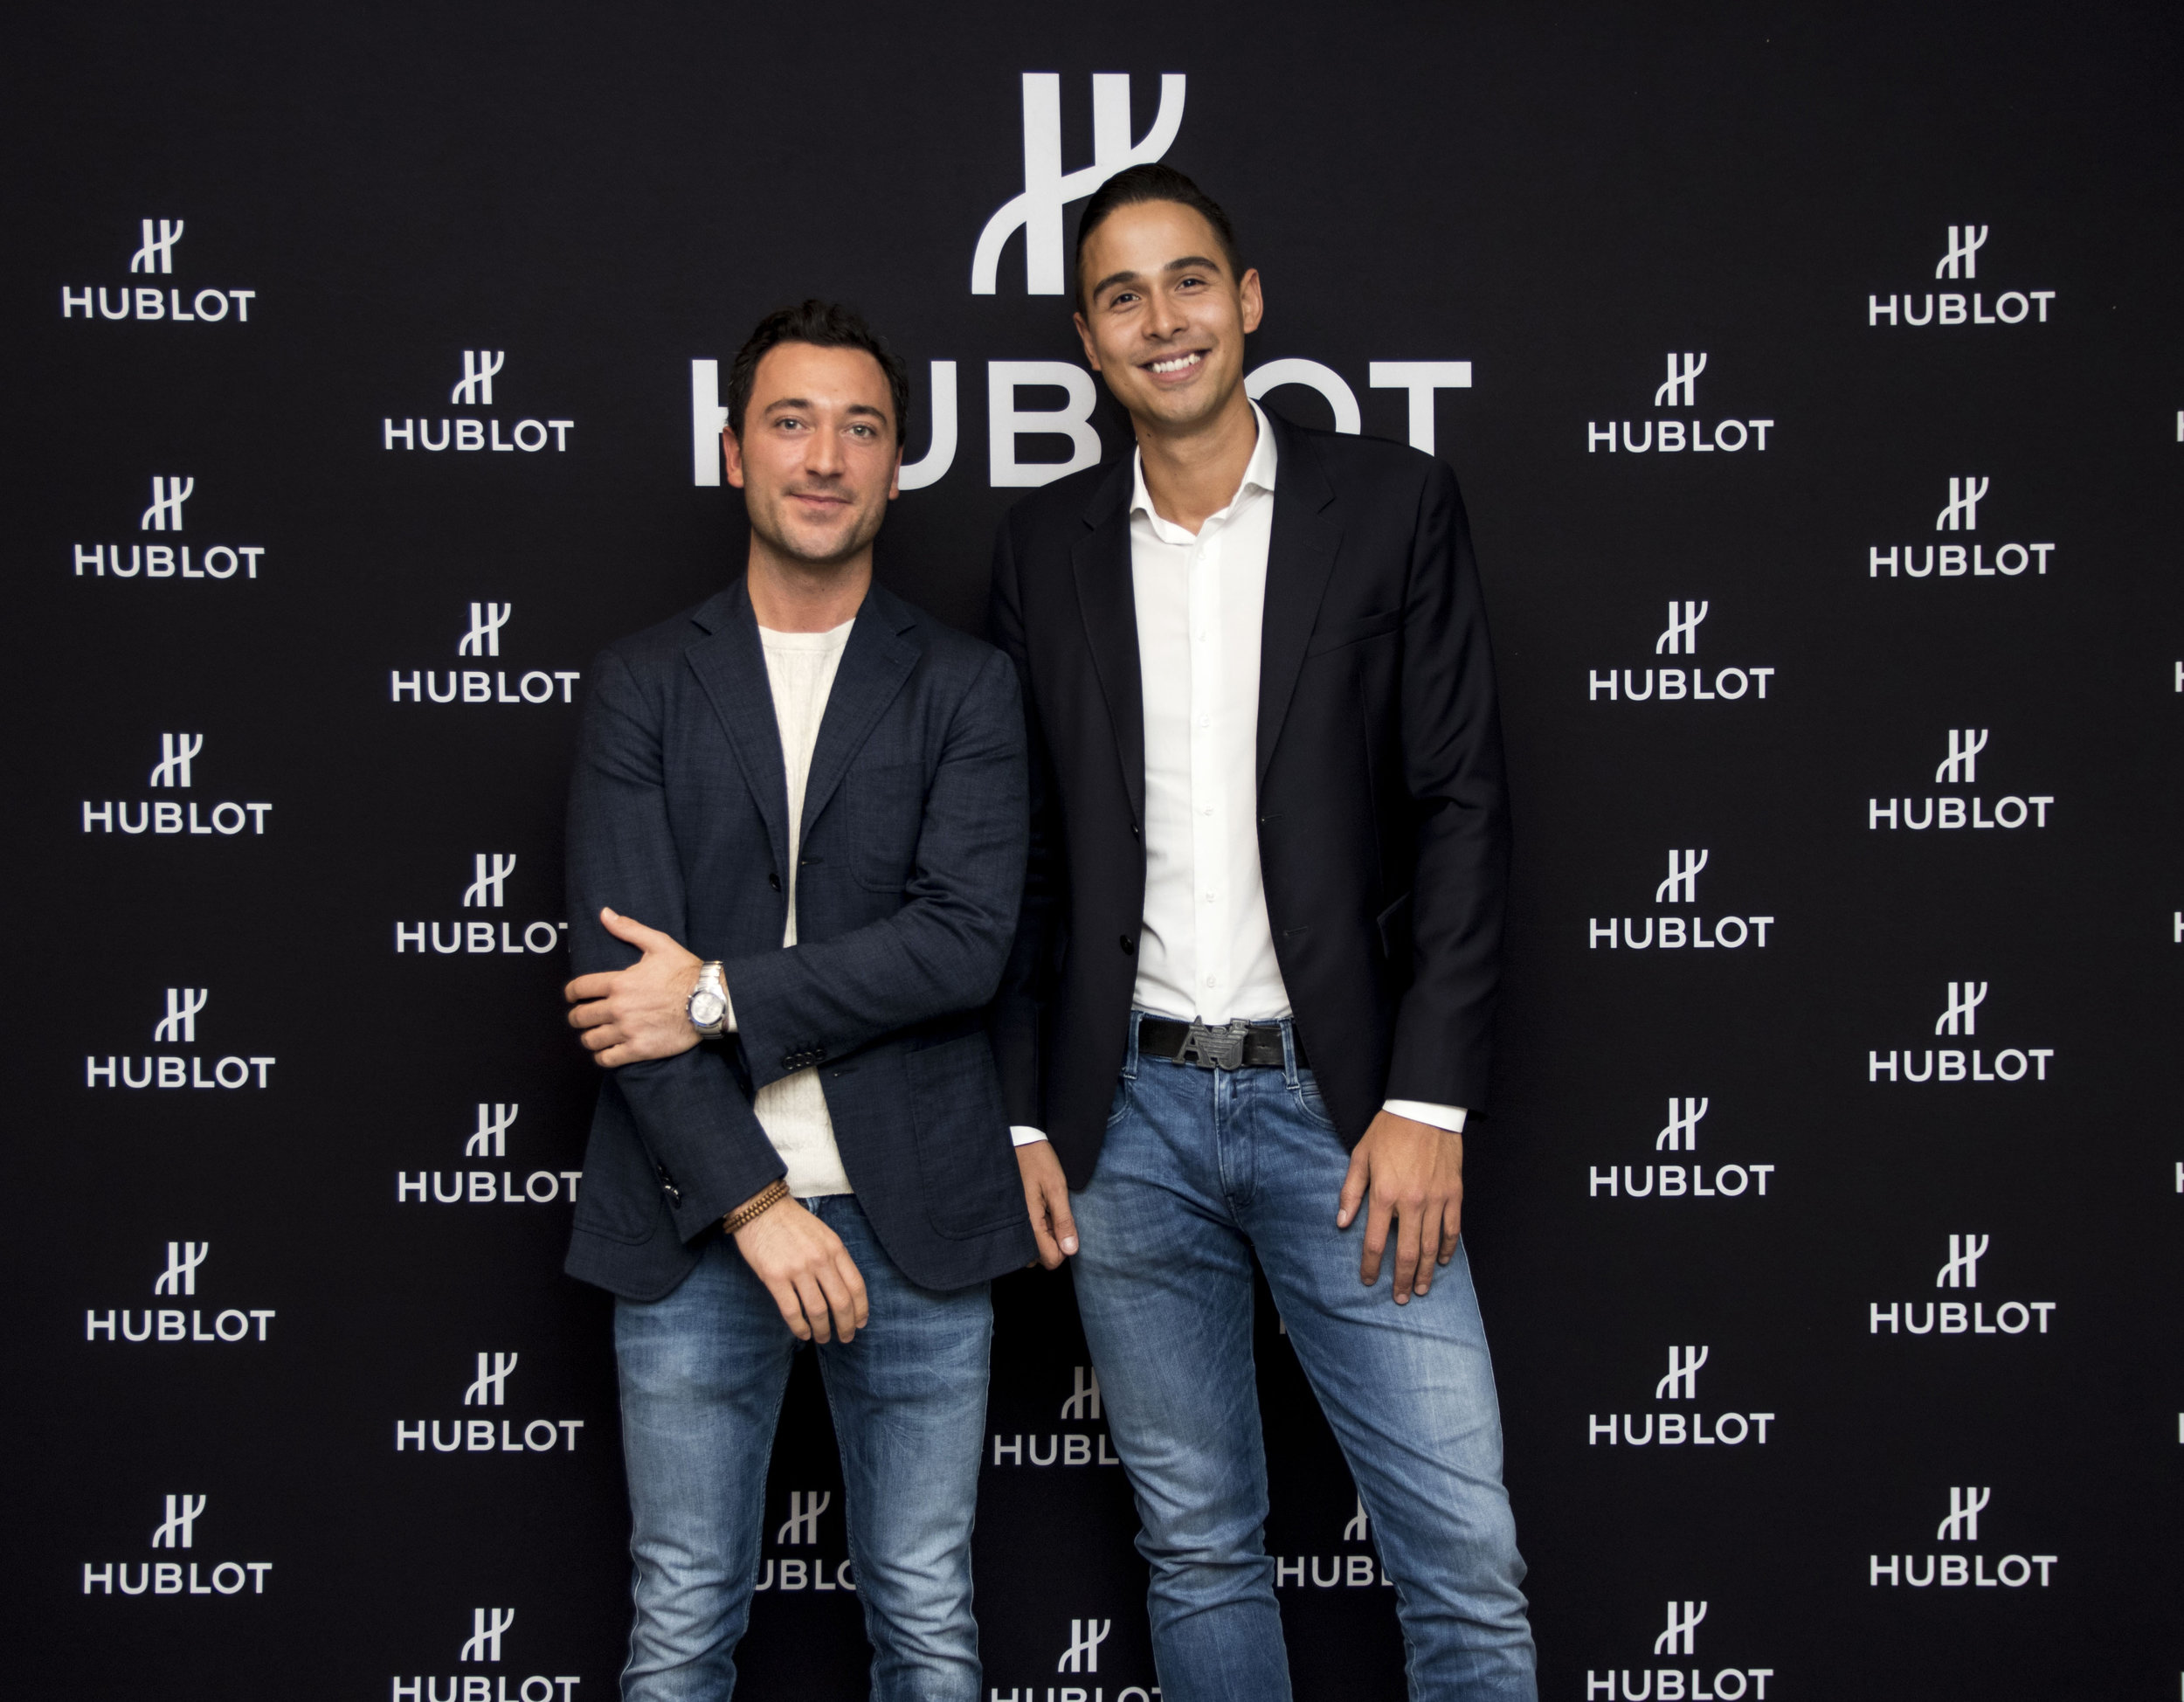 luxurygroupswitzerland_marcferrero_hublot_web039.jpg